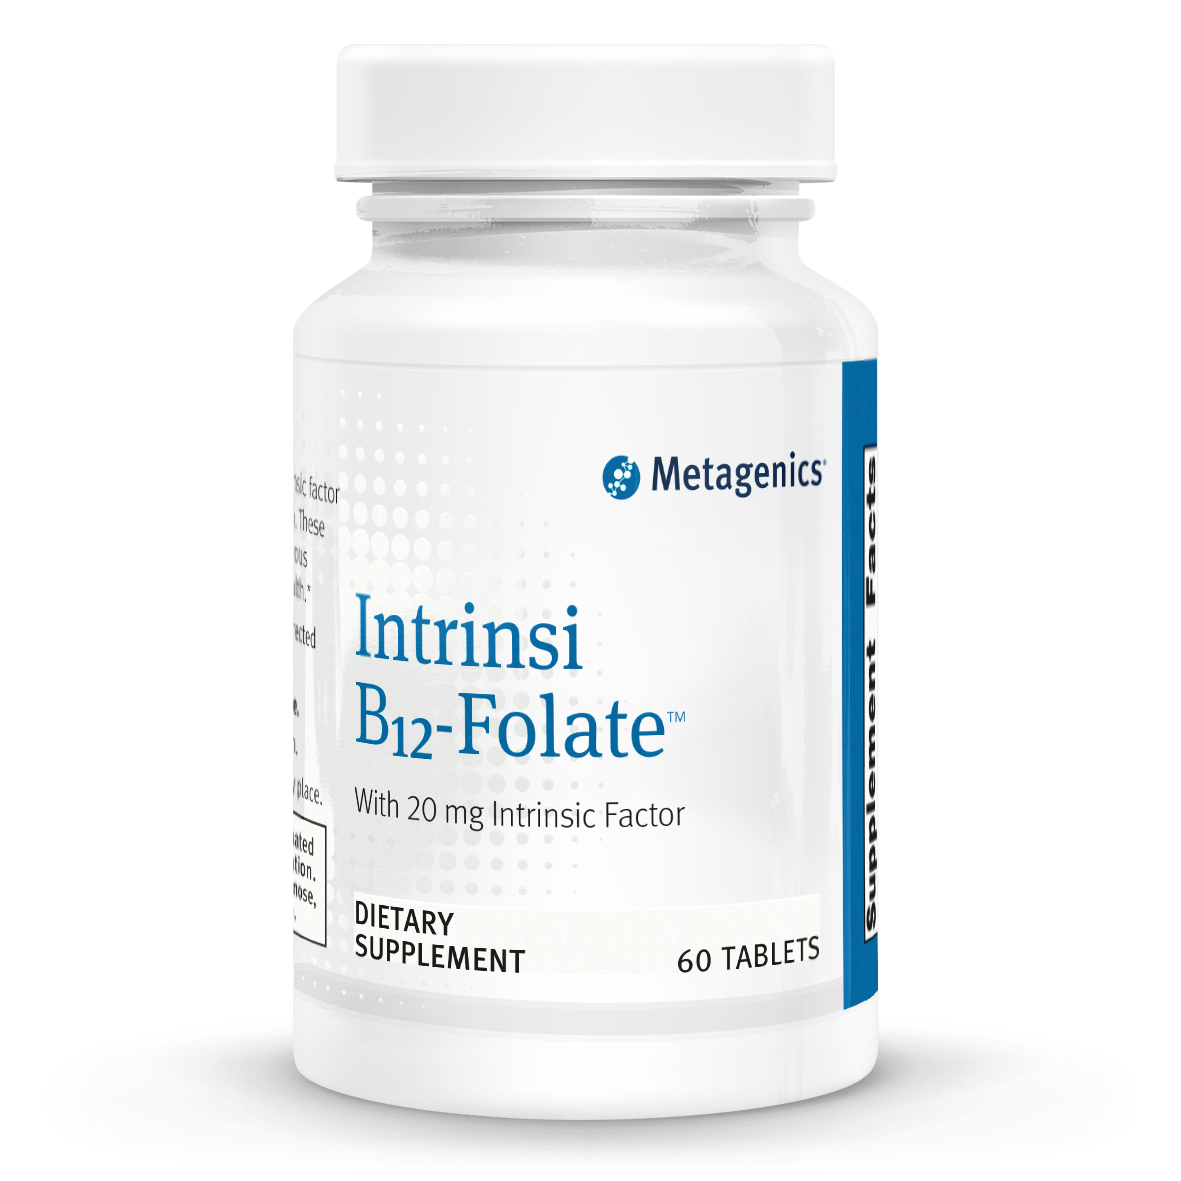 Intrinsi B12 | Folate™